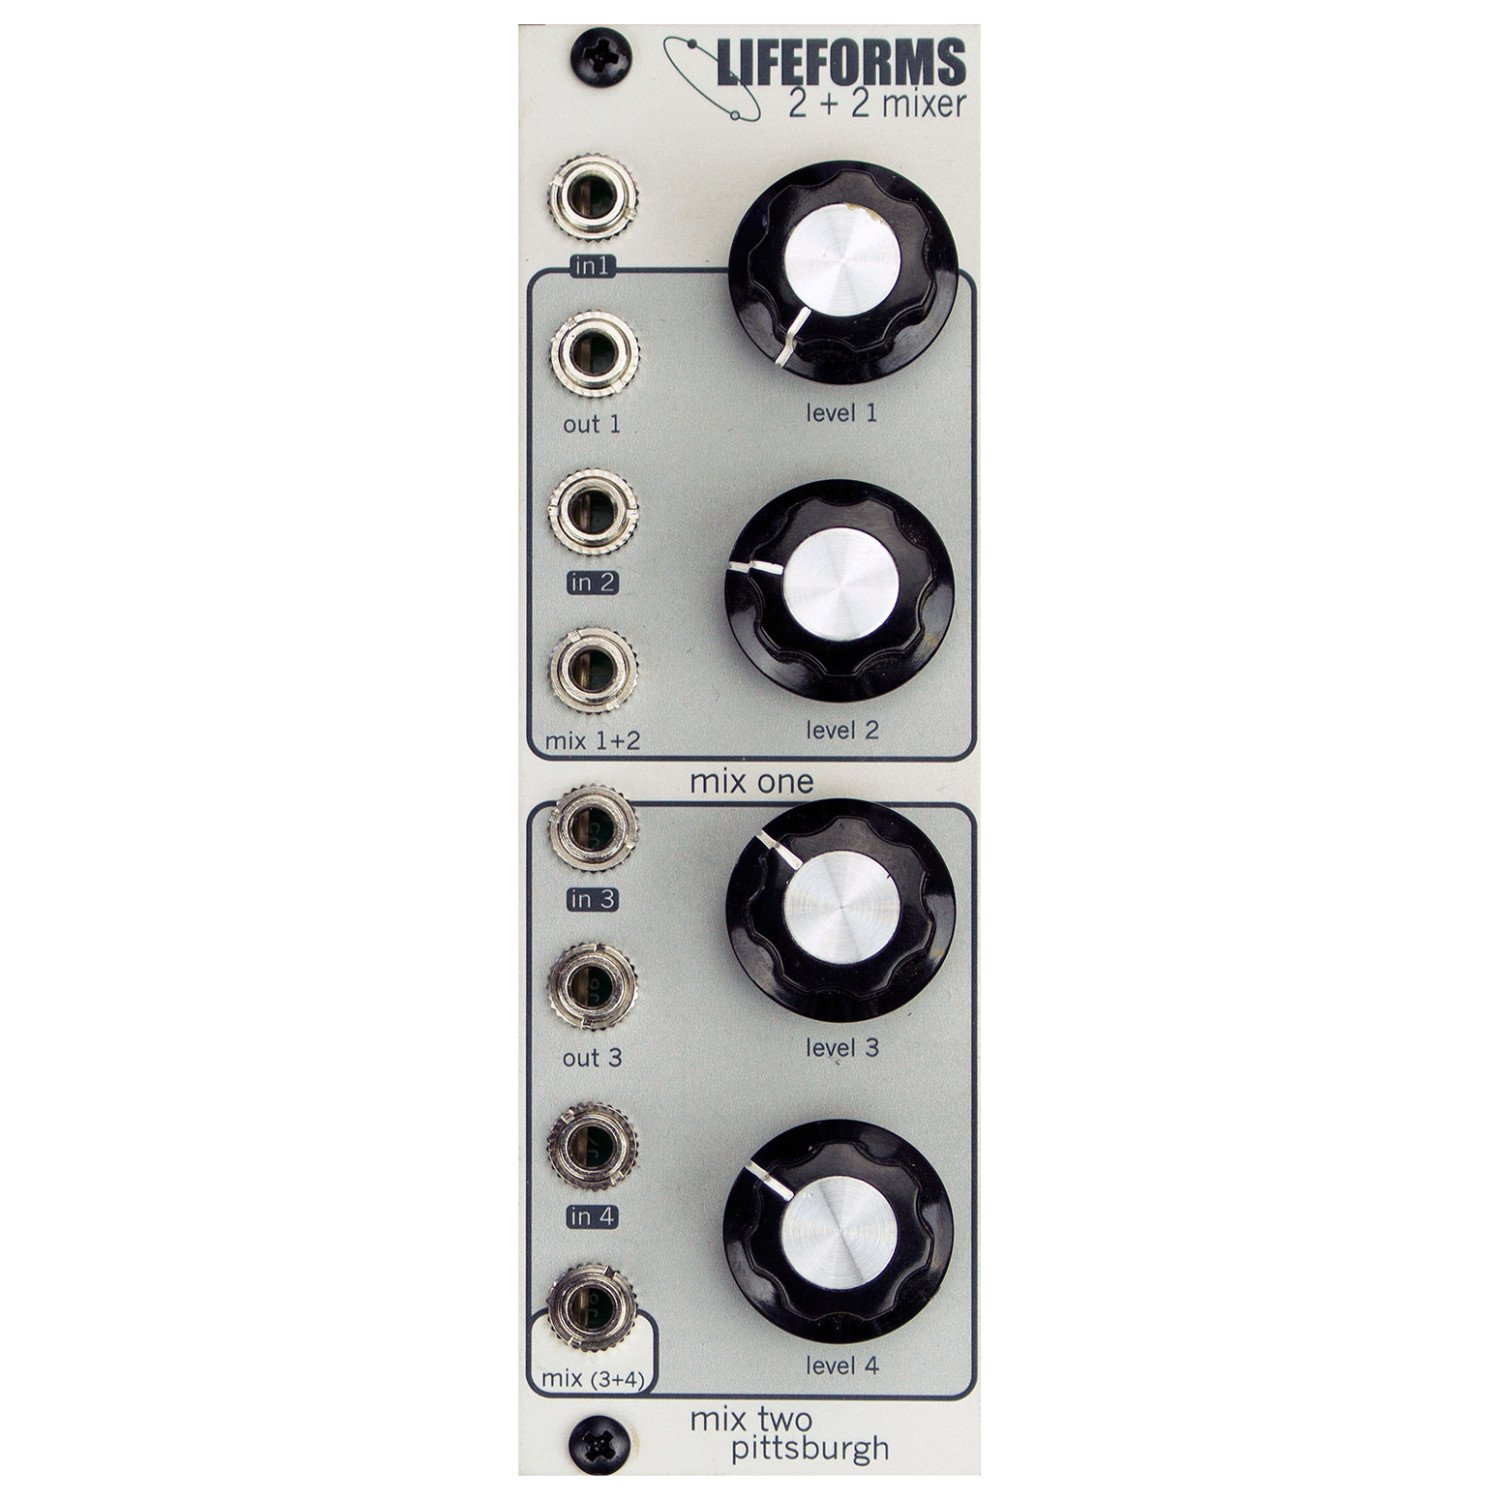 Pittsburgh Modular Synthesizers LIFEFORMS 2+2 MIXER by Pittsburgh Modular Synthesizers